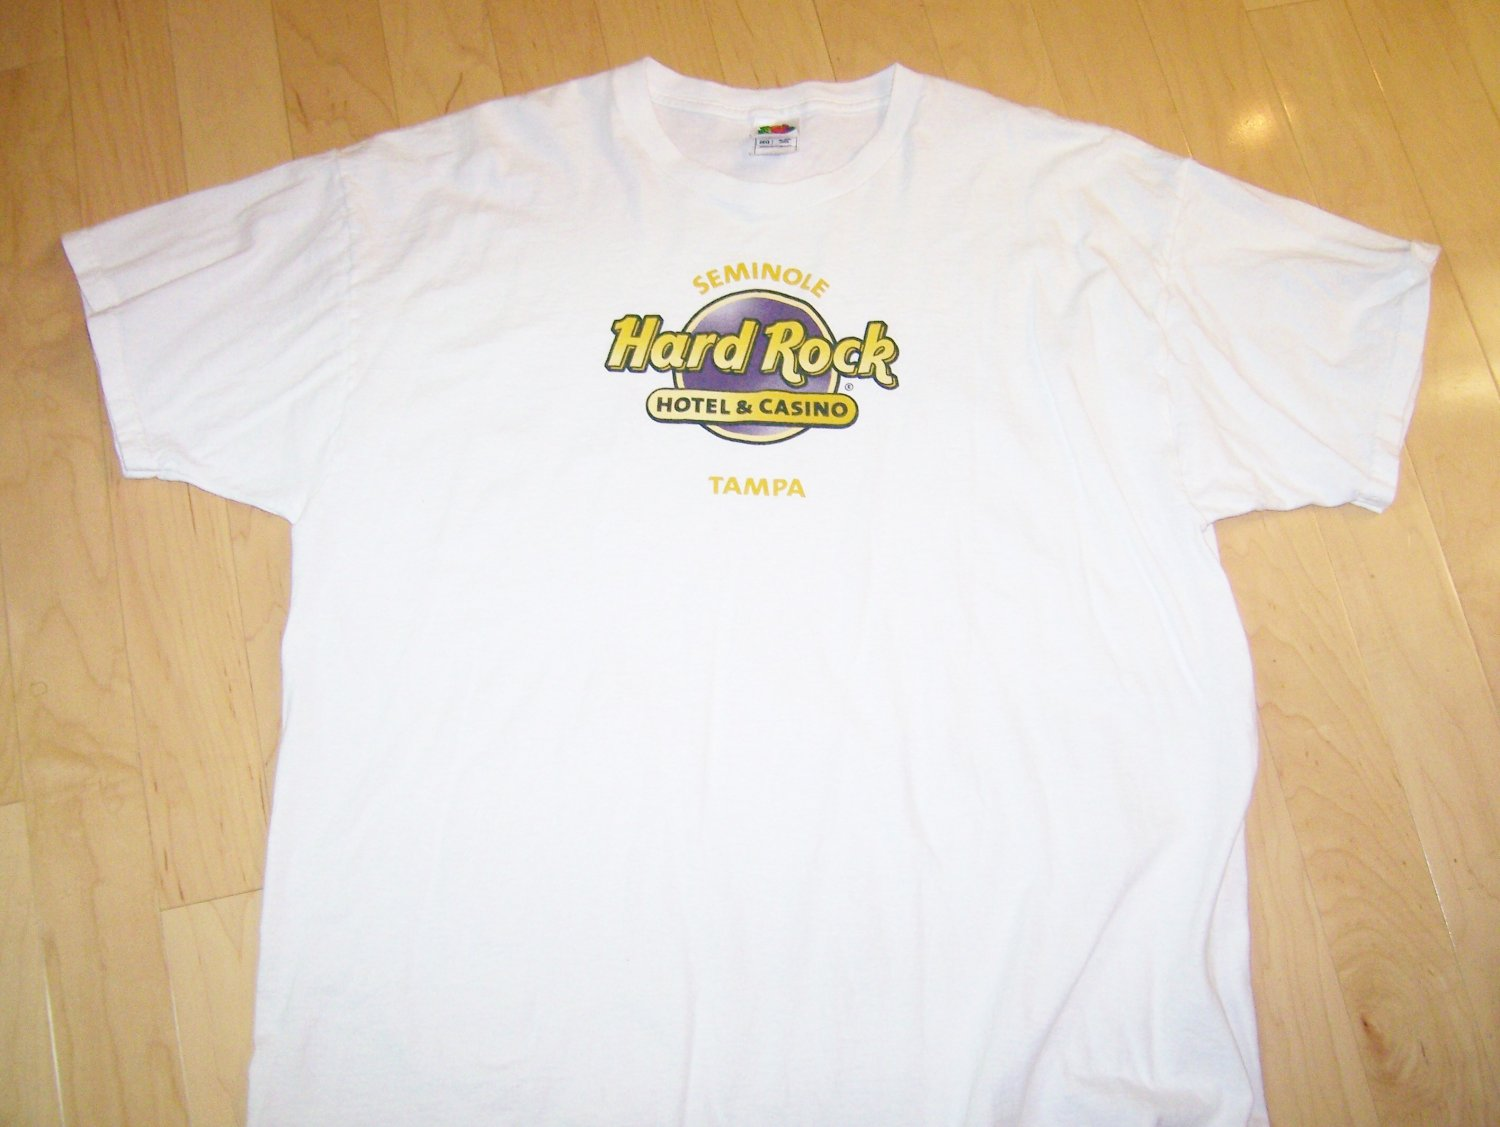 T Shirt White with Hard Rock Logo  2XL  BNK1062